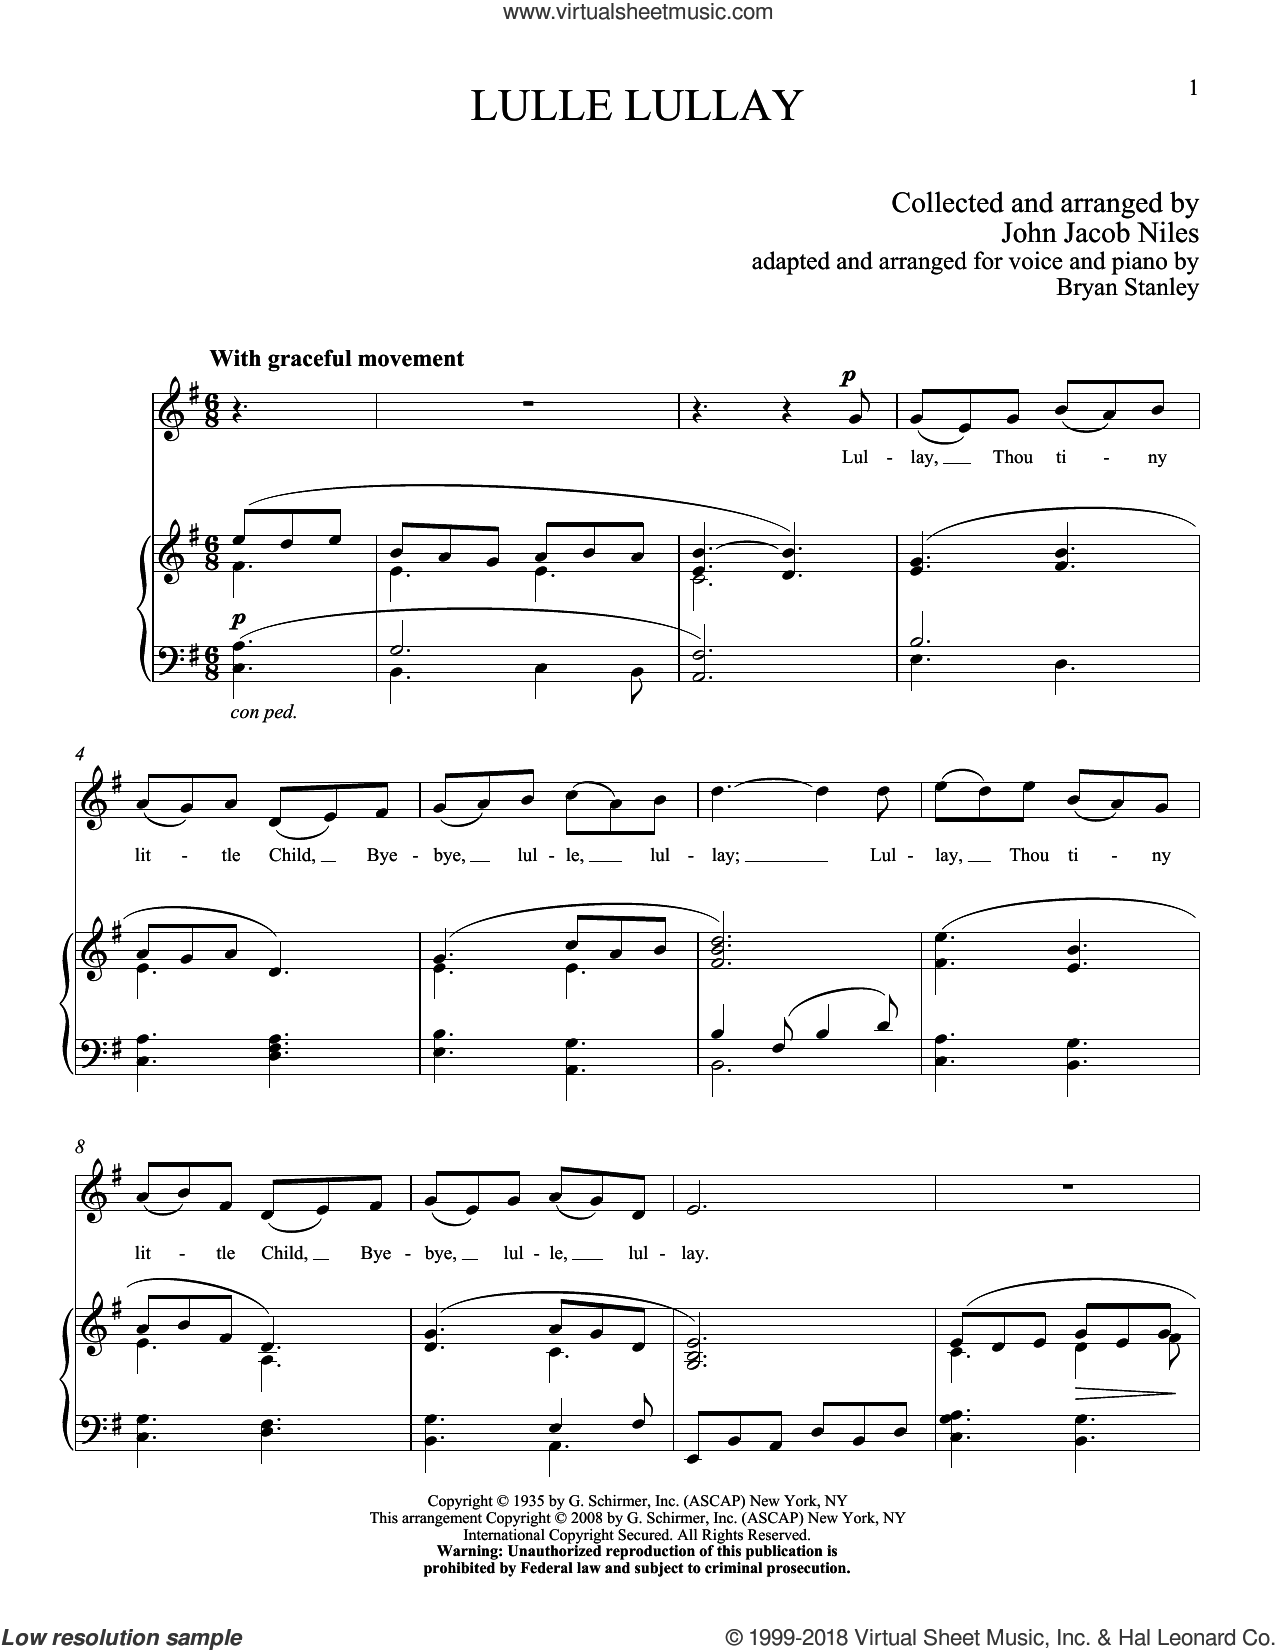 Lulle Lullay sheet music for voice and piano (High Voice) by John Jacob Niles, intermediate skill level